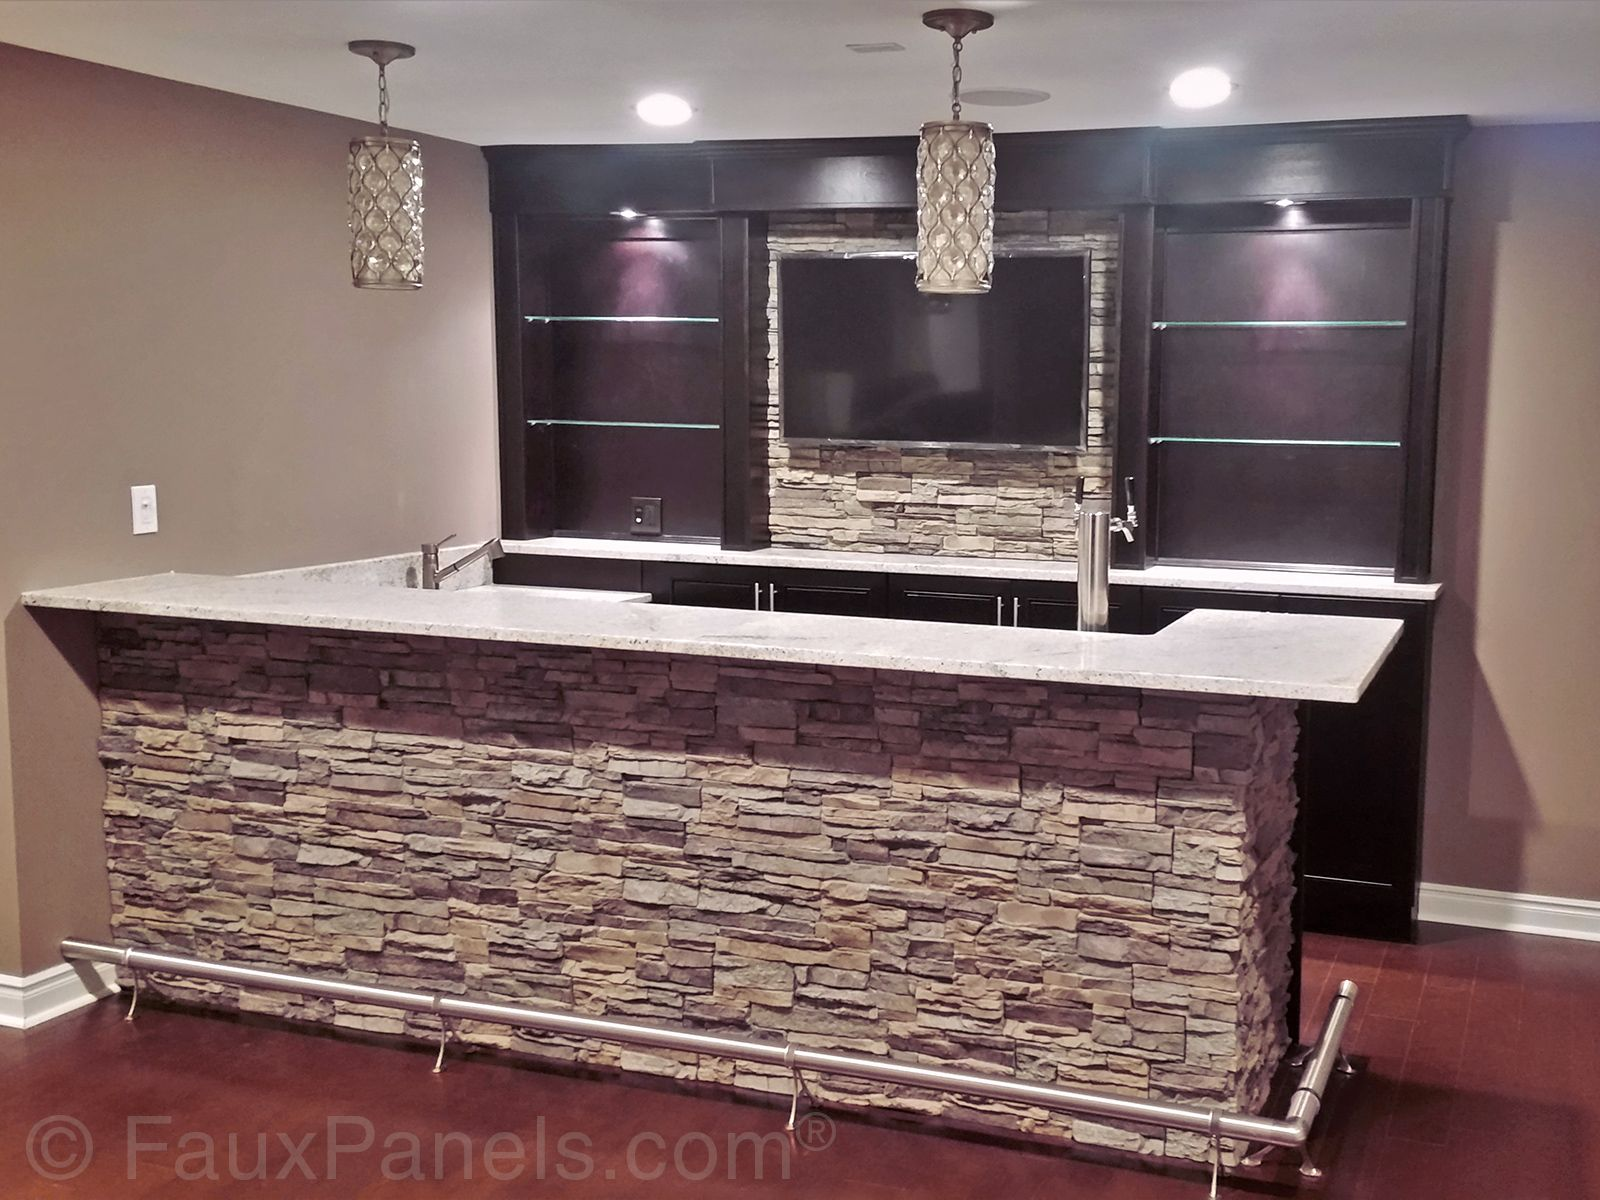 Home Bar Ideas   See Pics of Must-Have DIY Designs